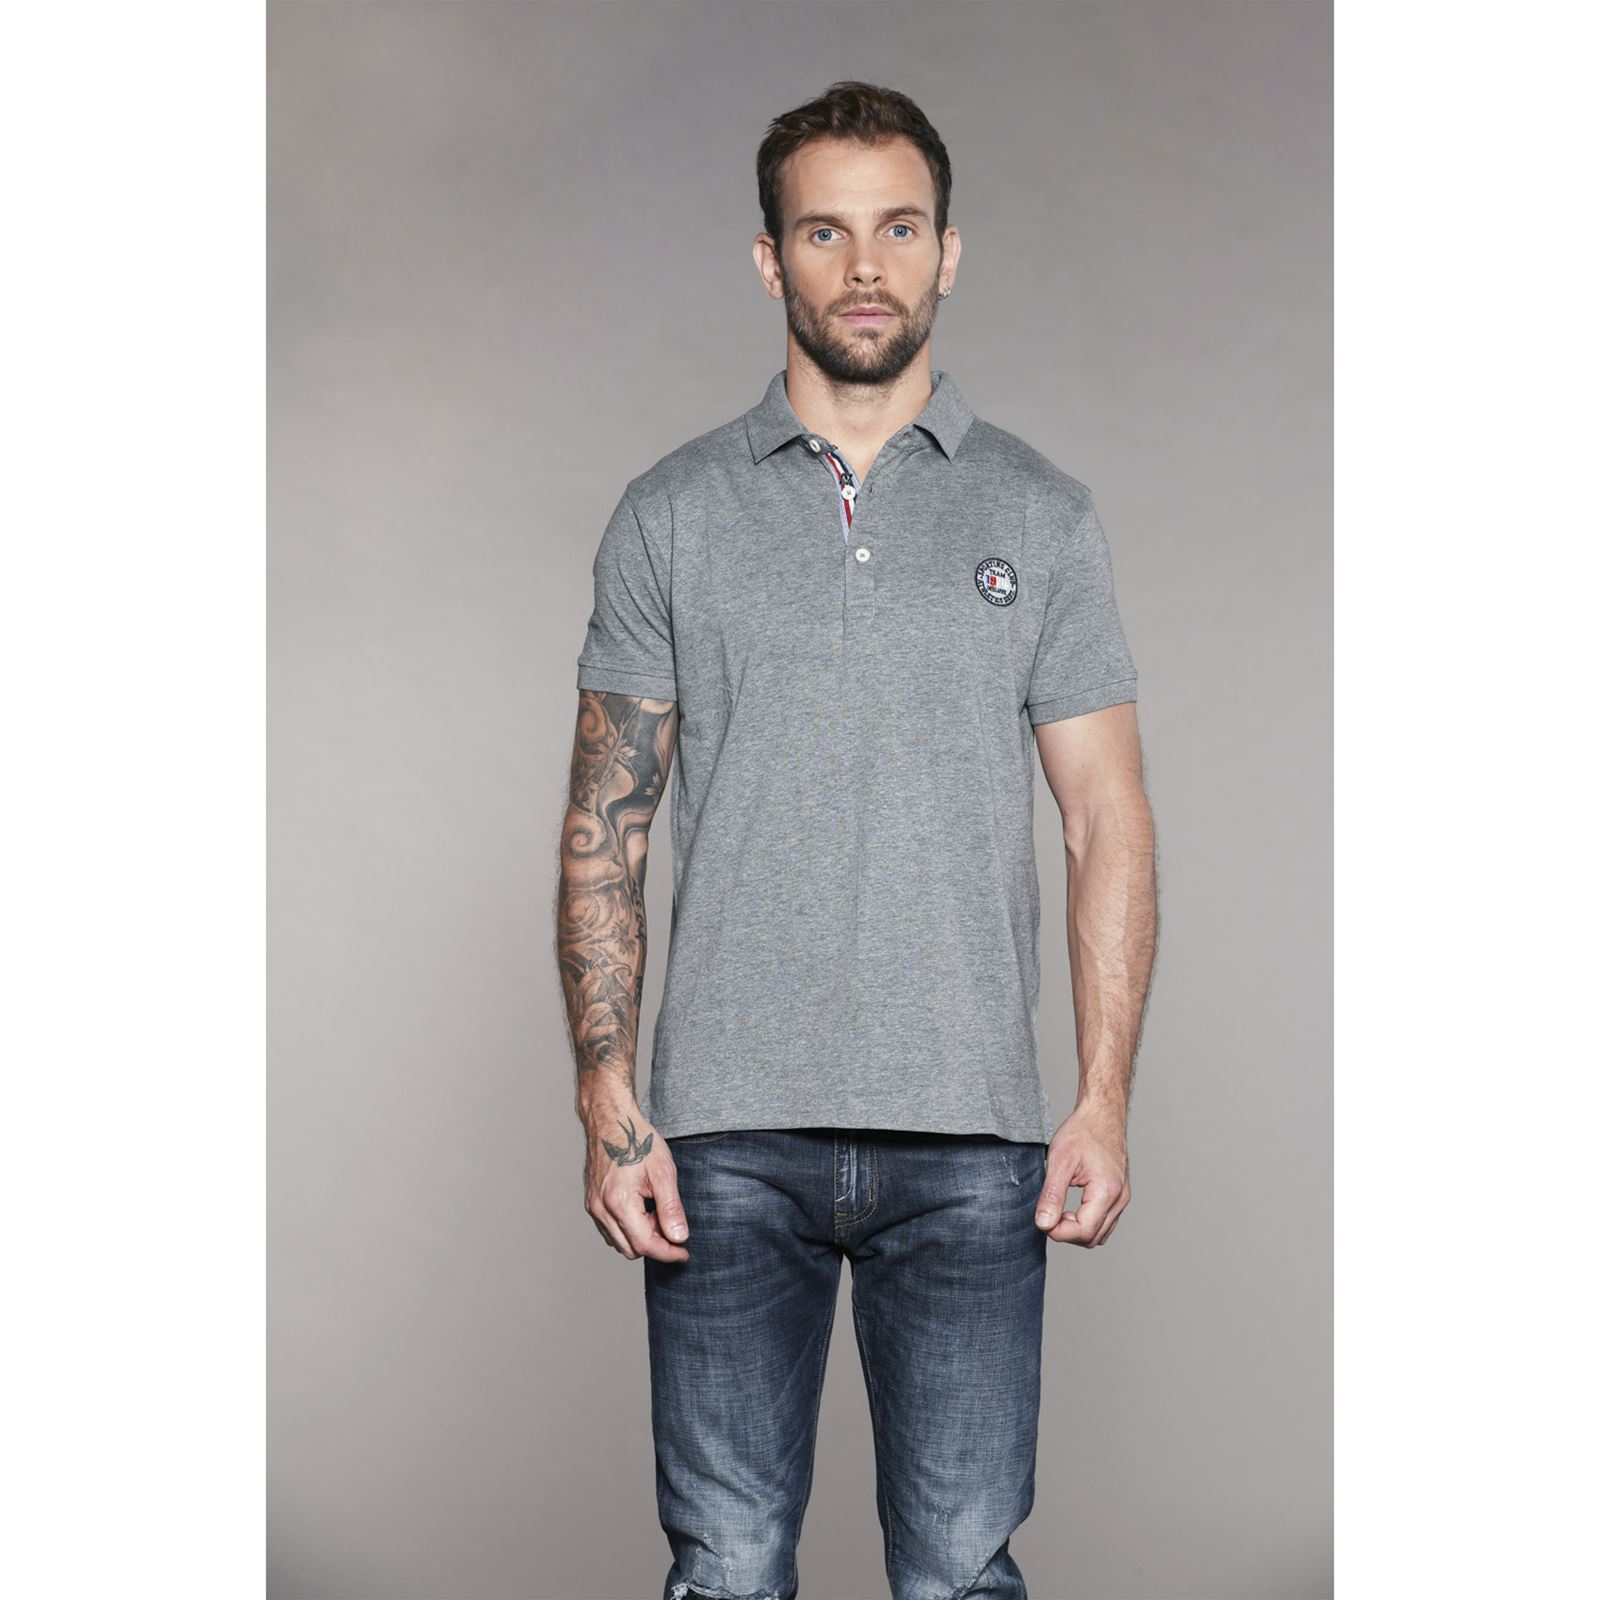 V SomethingPolo Souris Homme Courtes Deeluxe Manches Gris OZiTPukX